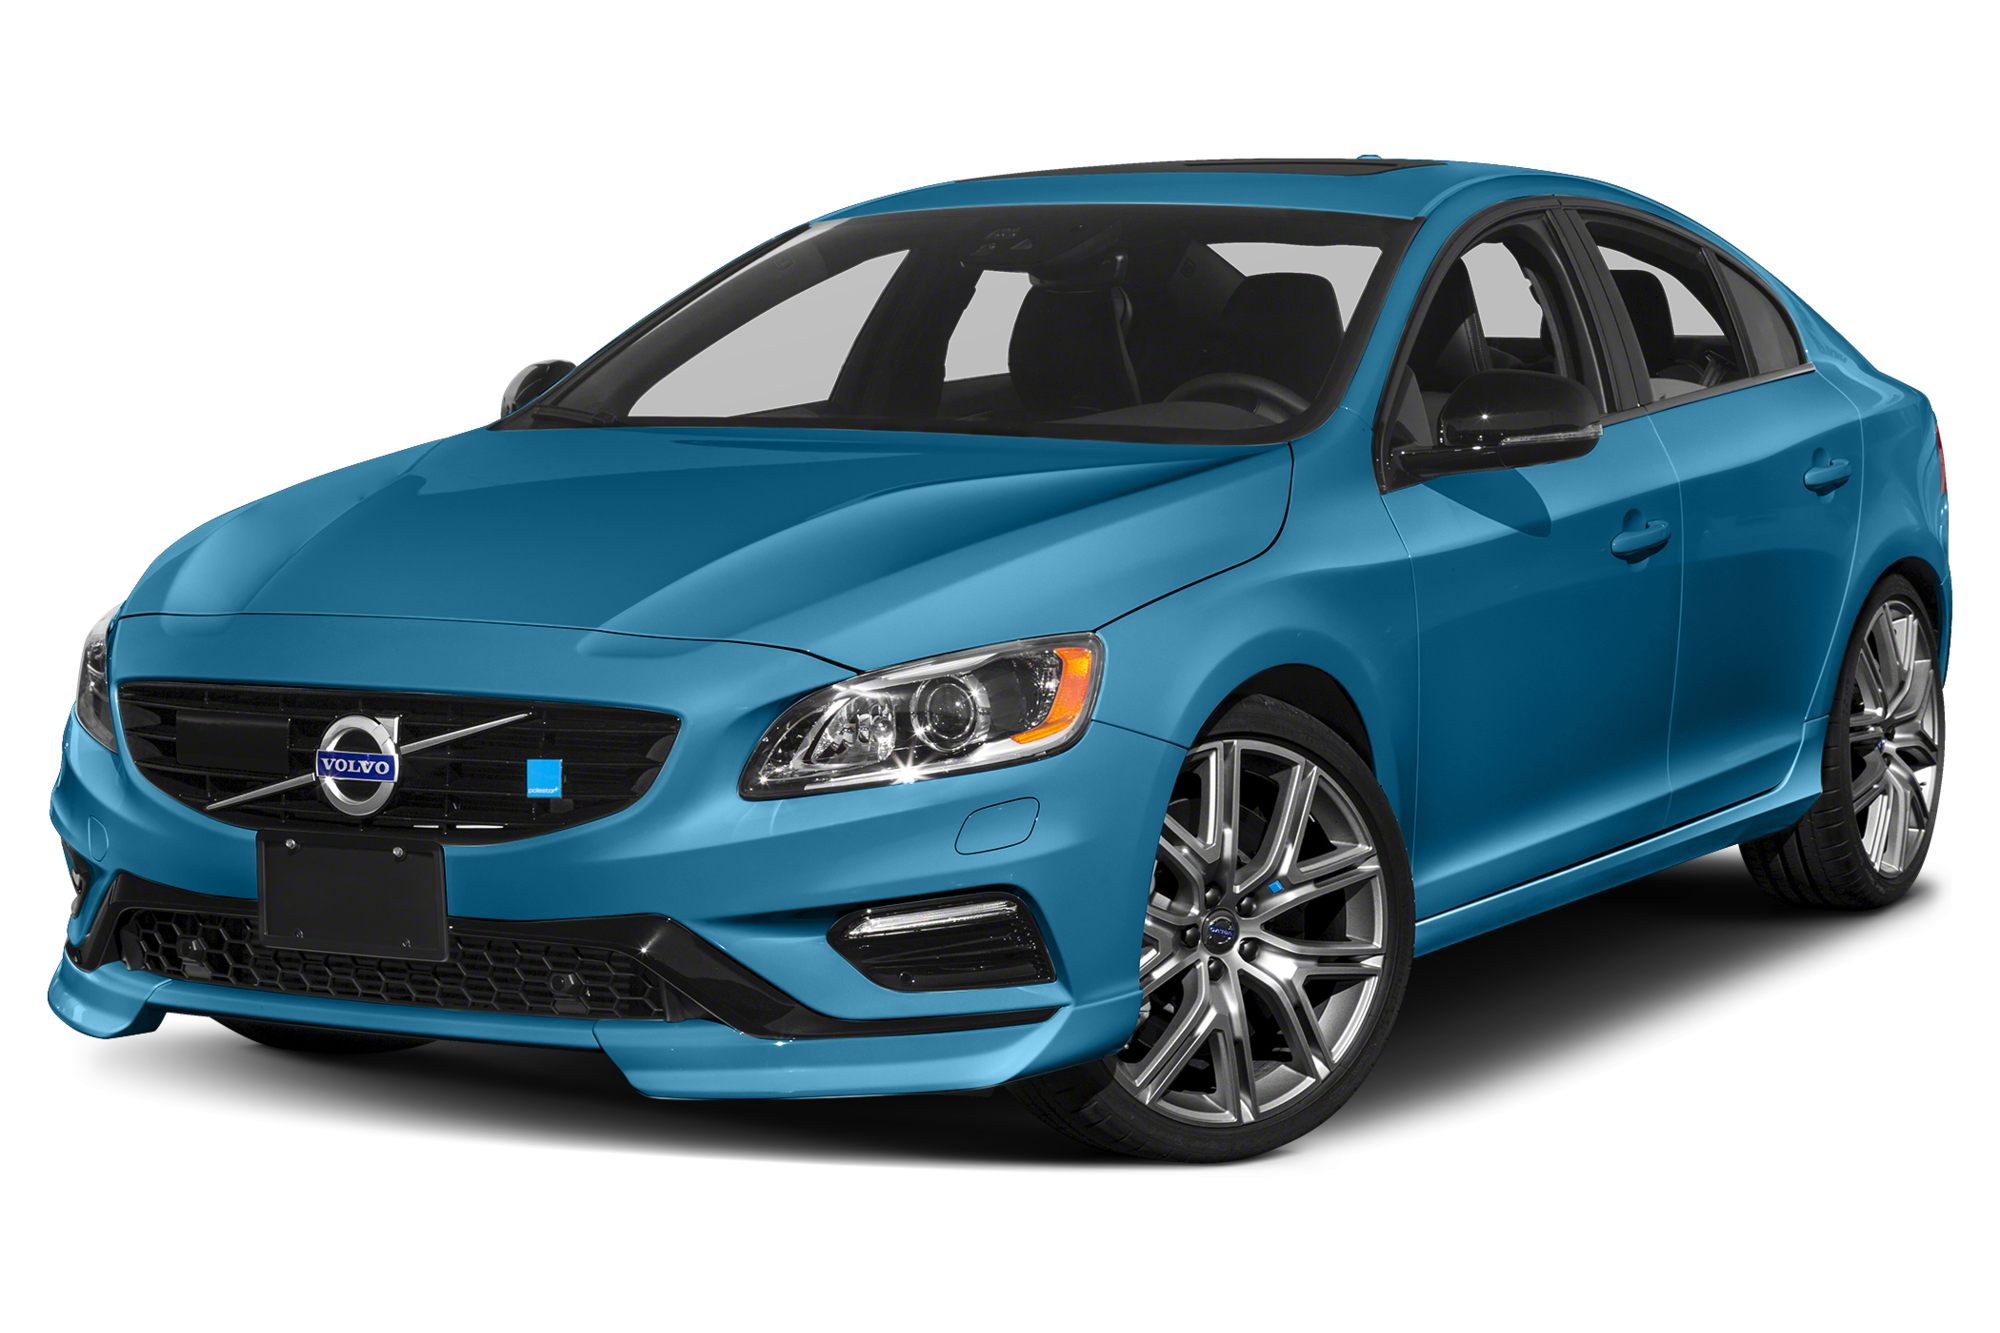 307,900 2008-2020 Volvo Sedans, SUVs and Wagons: Recall Alert